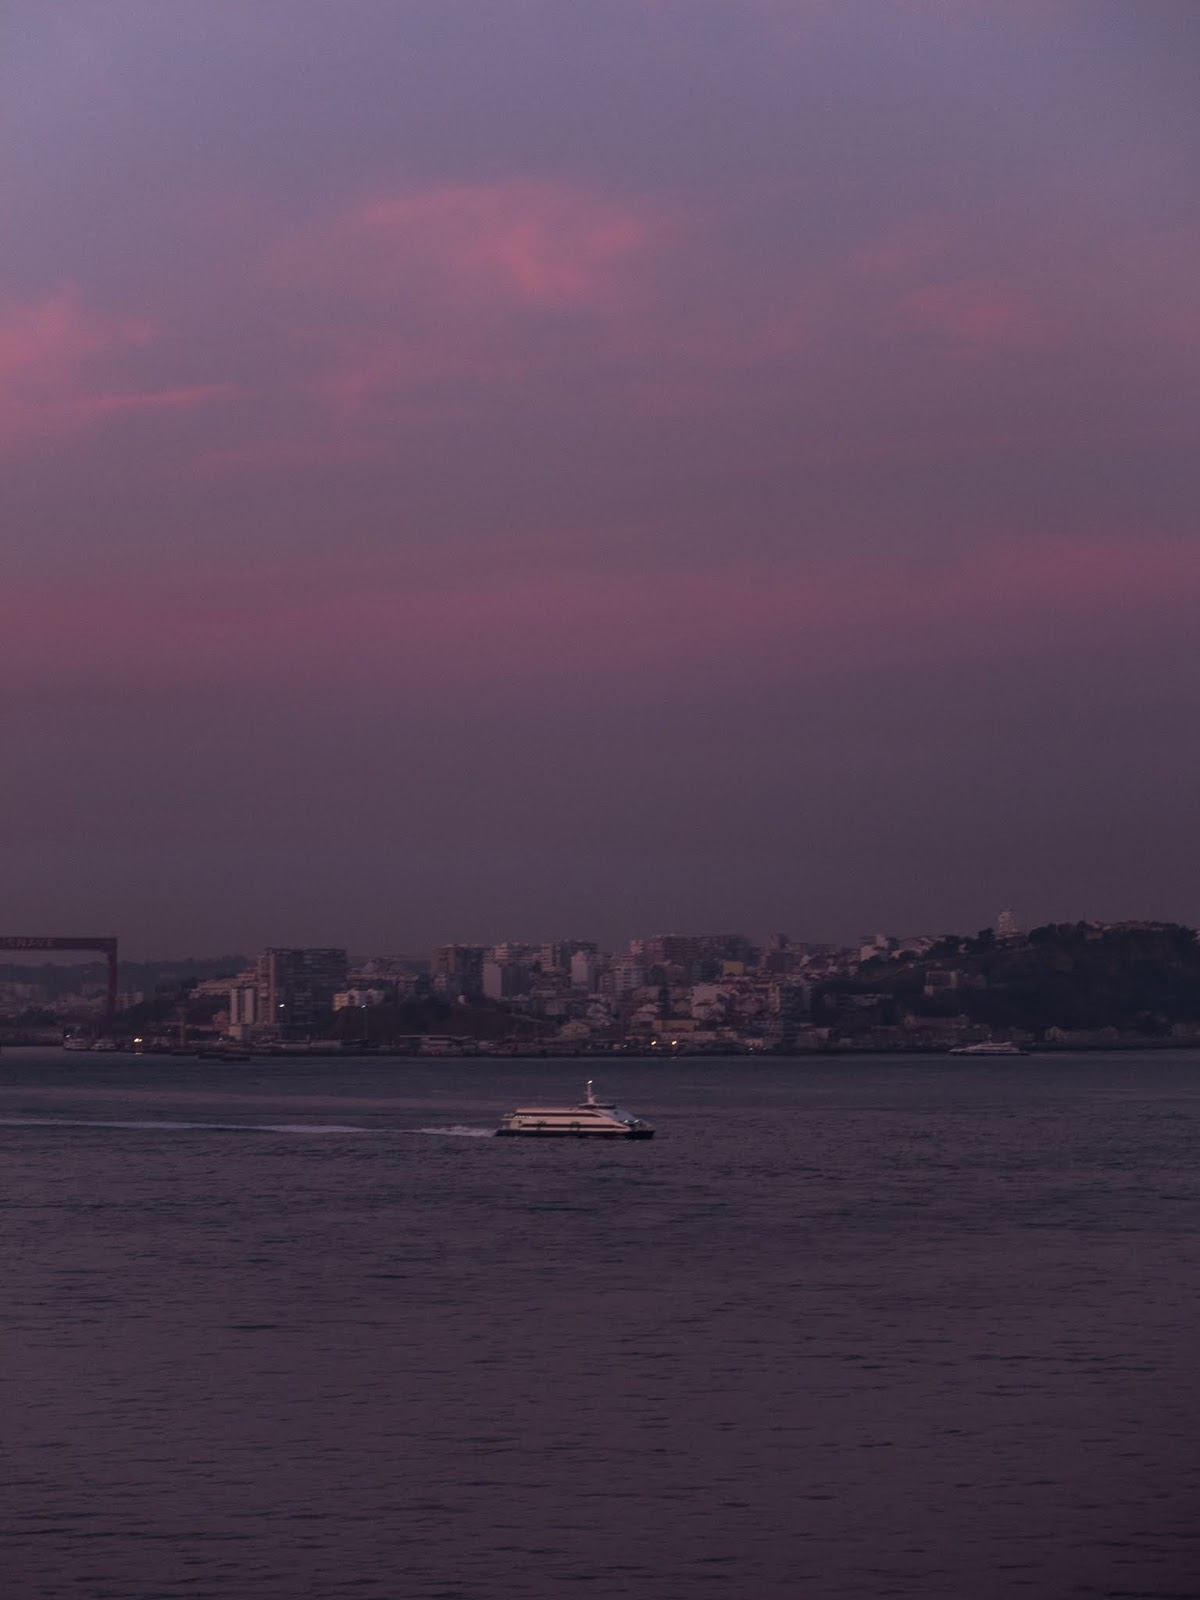 Purple sunrise over the water in Lisbon, Portugal.